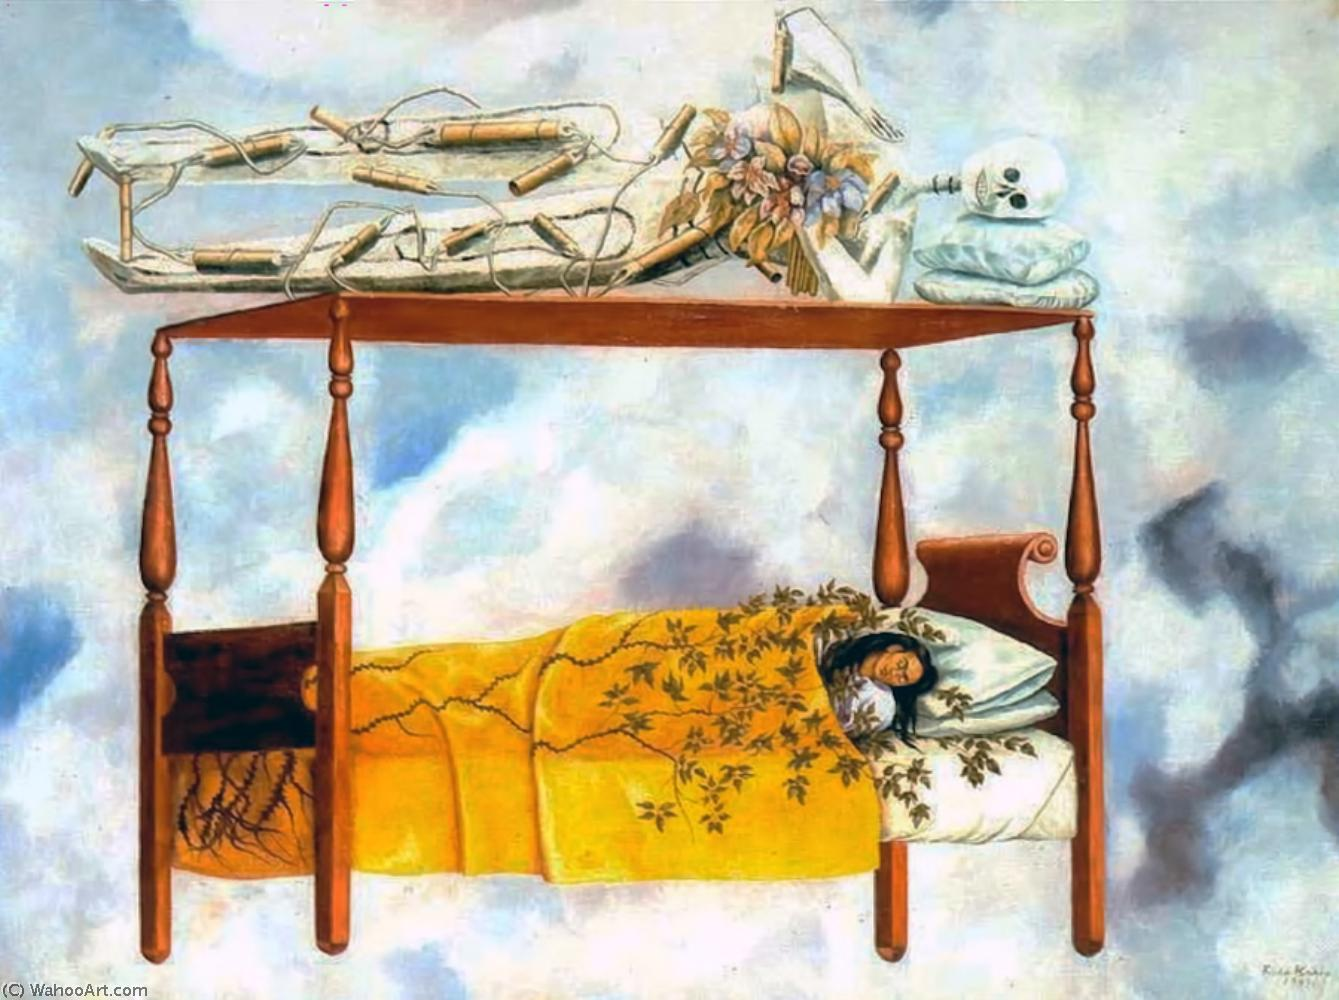 Arte De Mexico Beds The Dream The Bed 1940 By Frida Kahlo 1907 1954